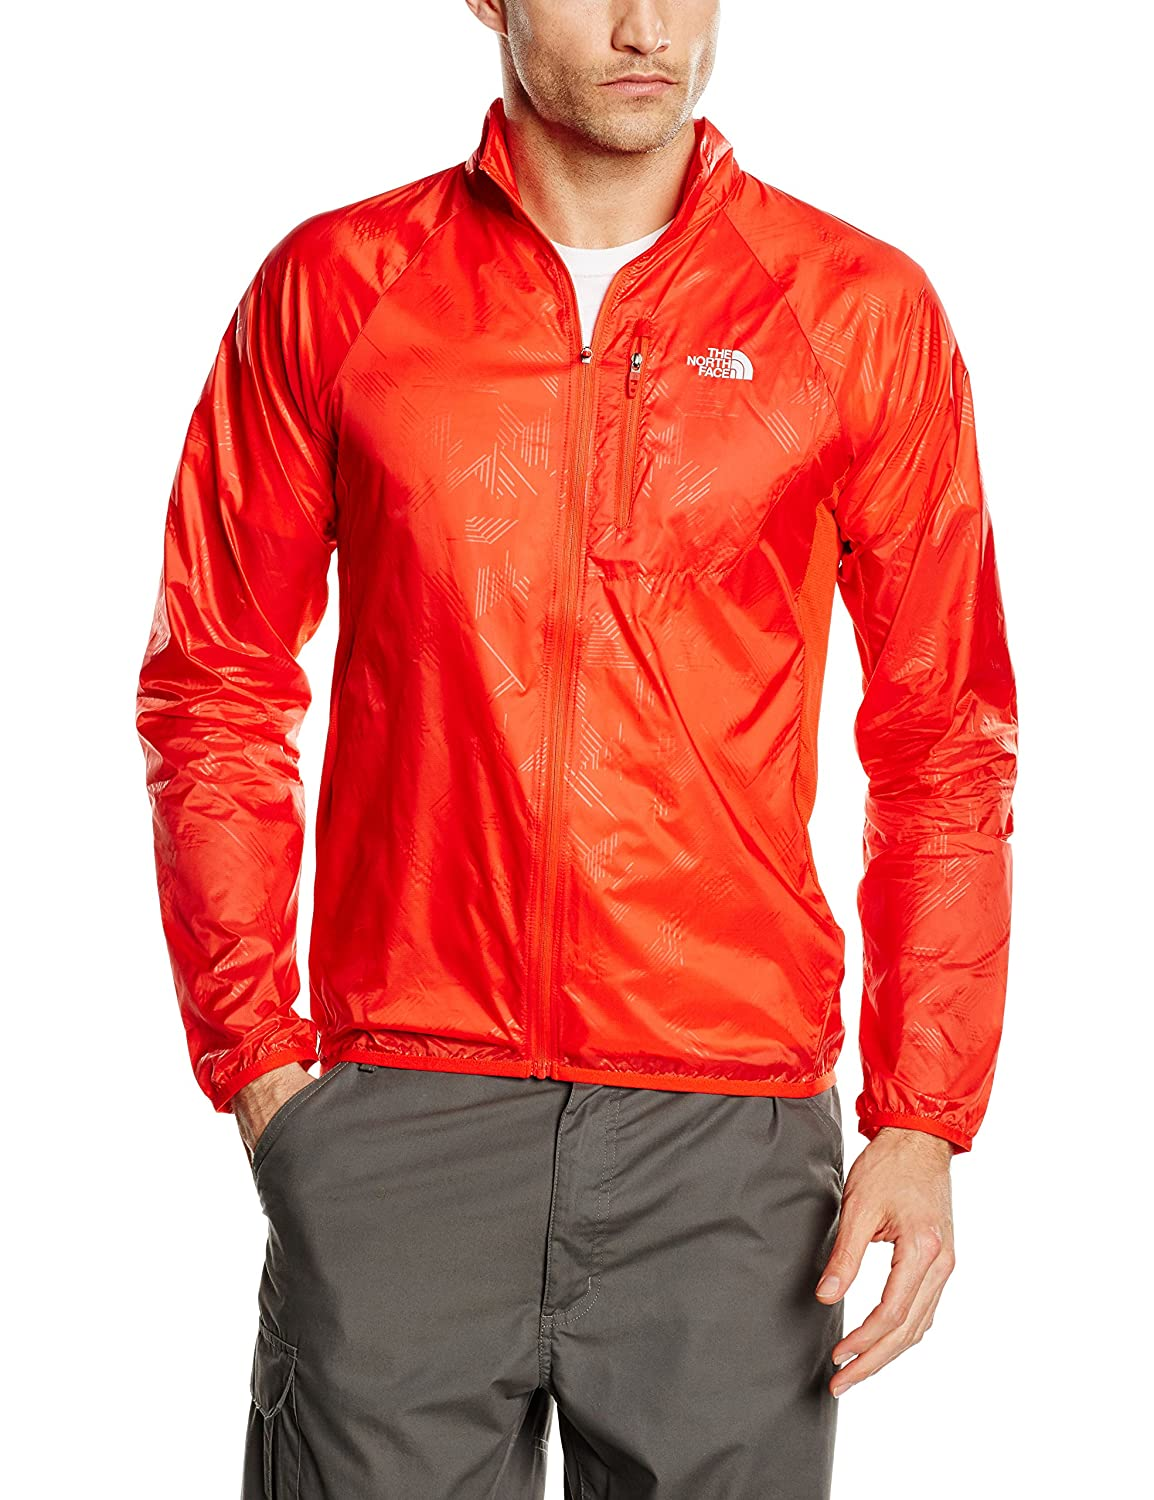 TALLA S. The North Face Nsr Wind EU - Chaqueta para Hombre